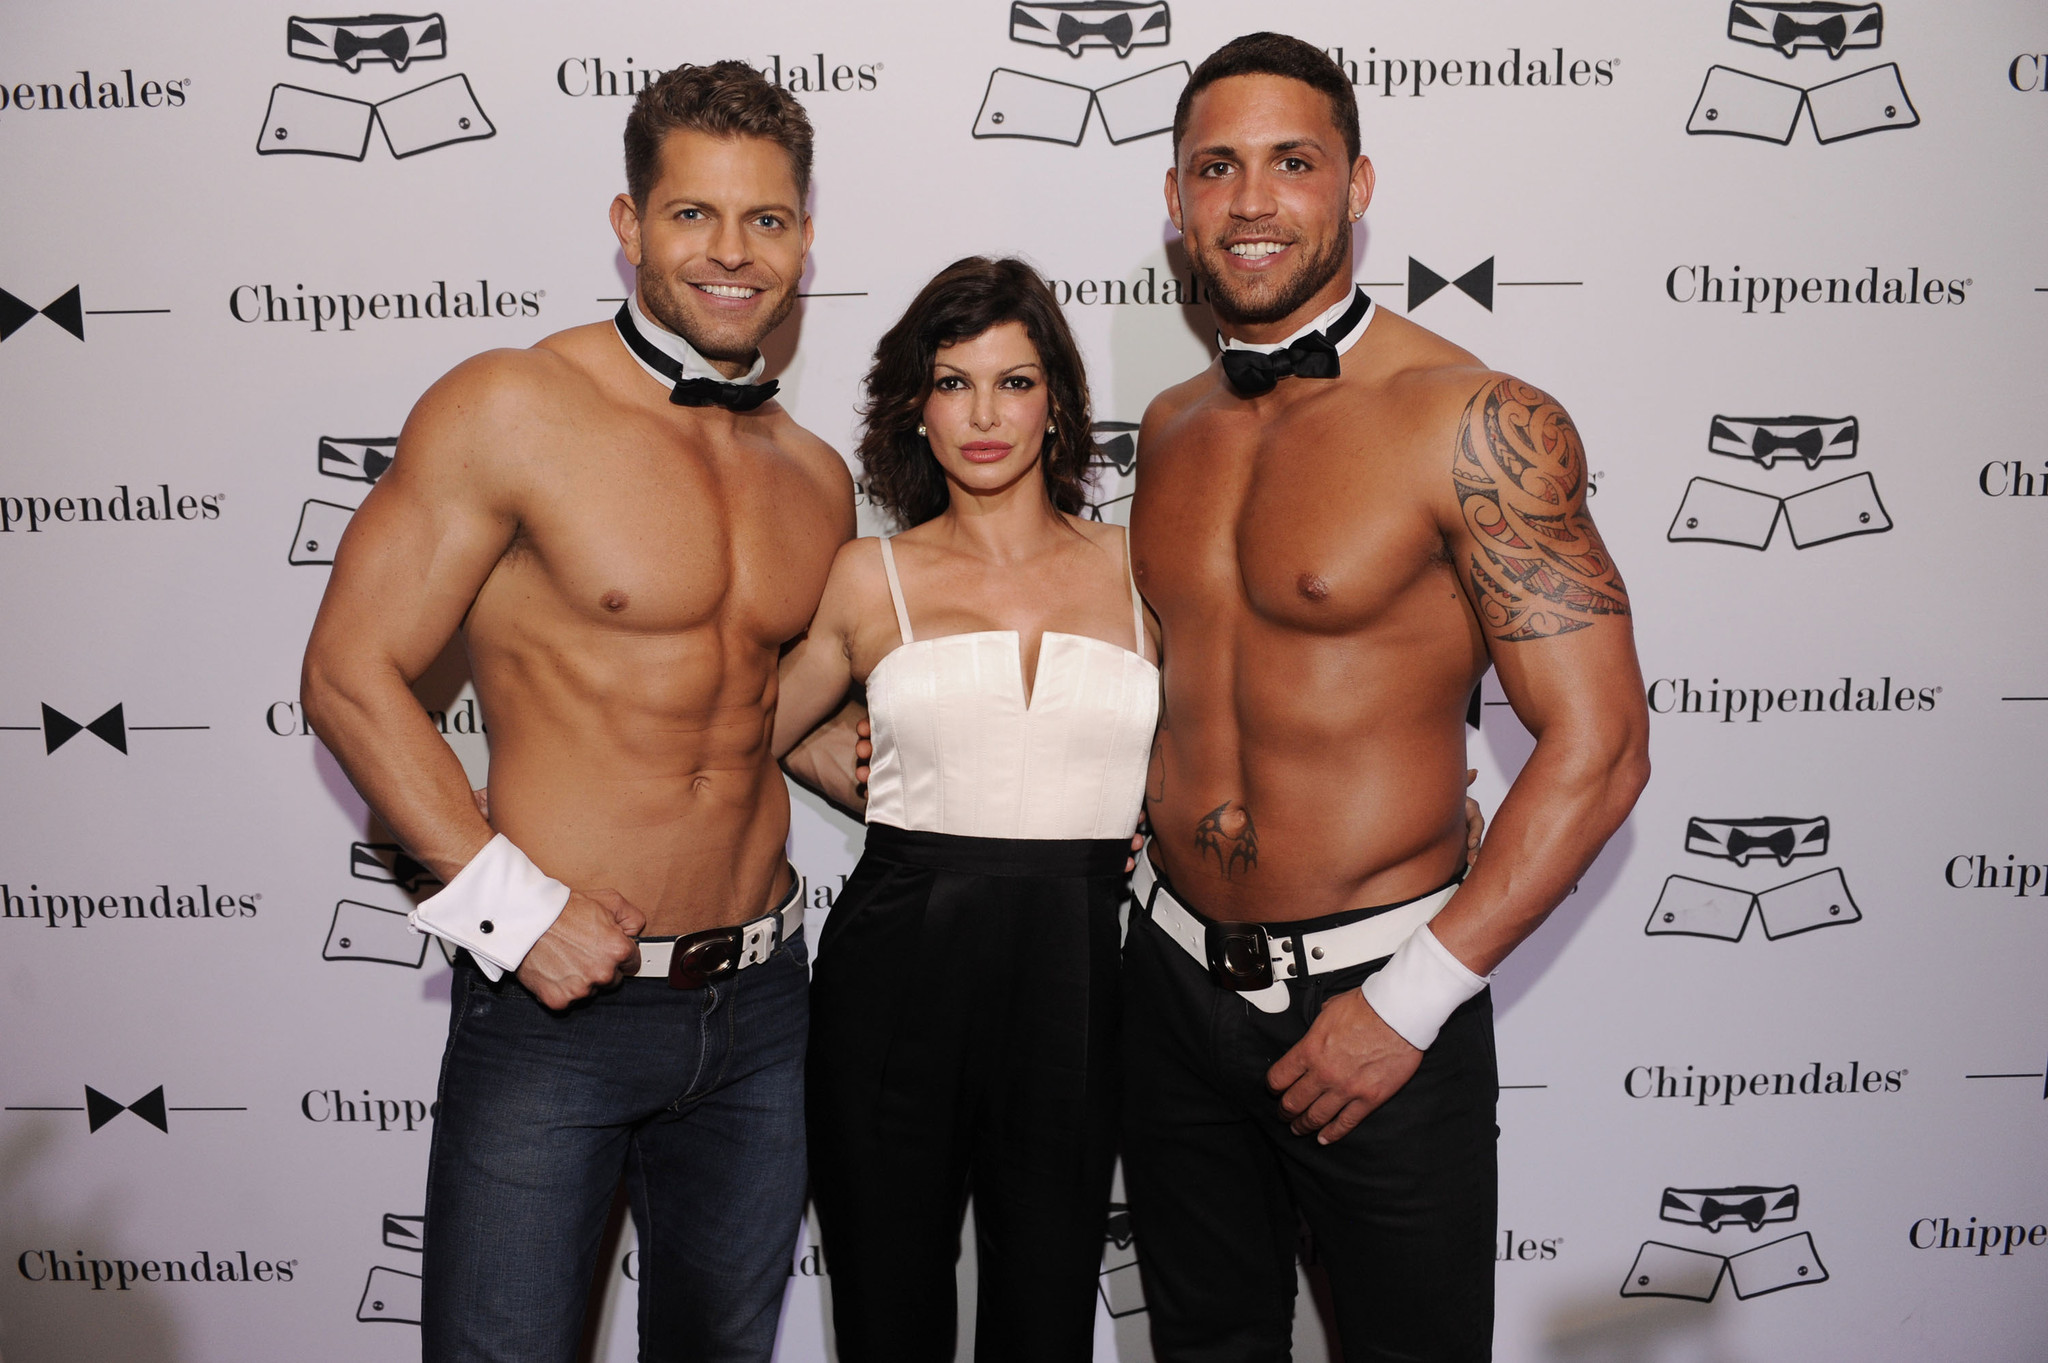 Chippendales open in Miami Beach - Jayme Vaughn, Carla Pellegrino and Matt Marshall2